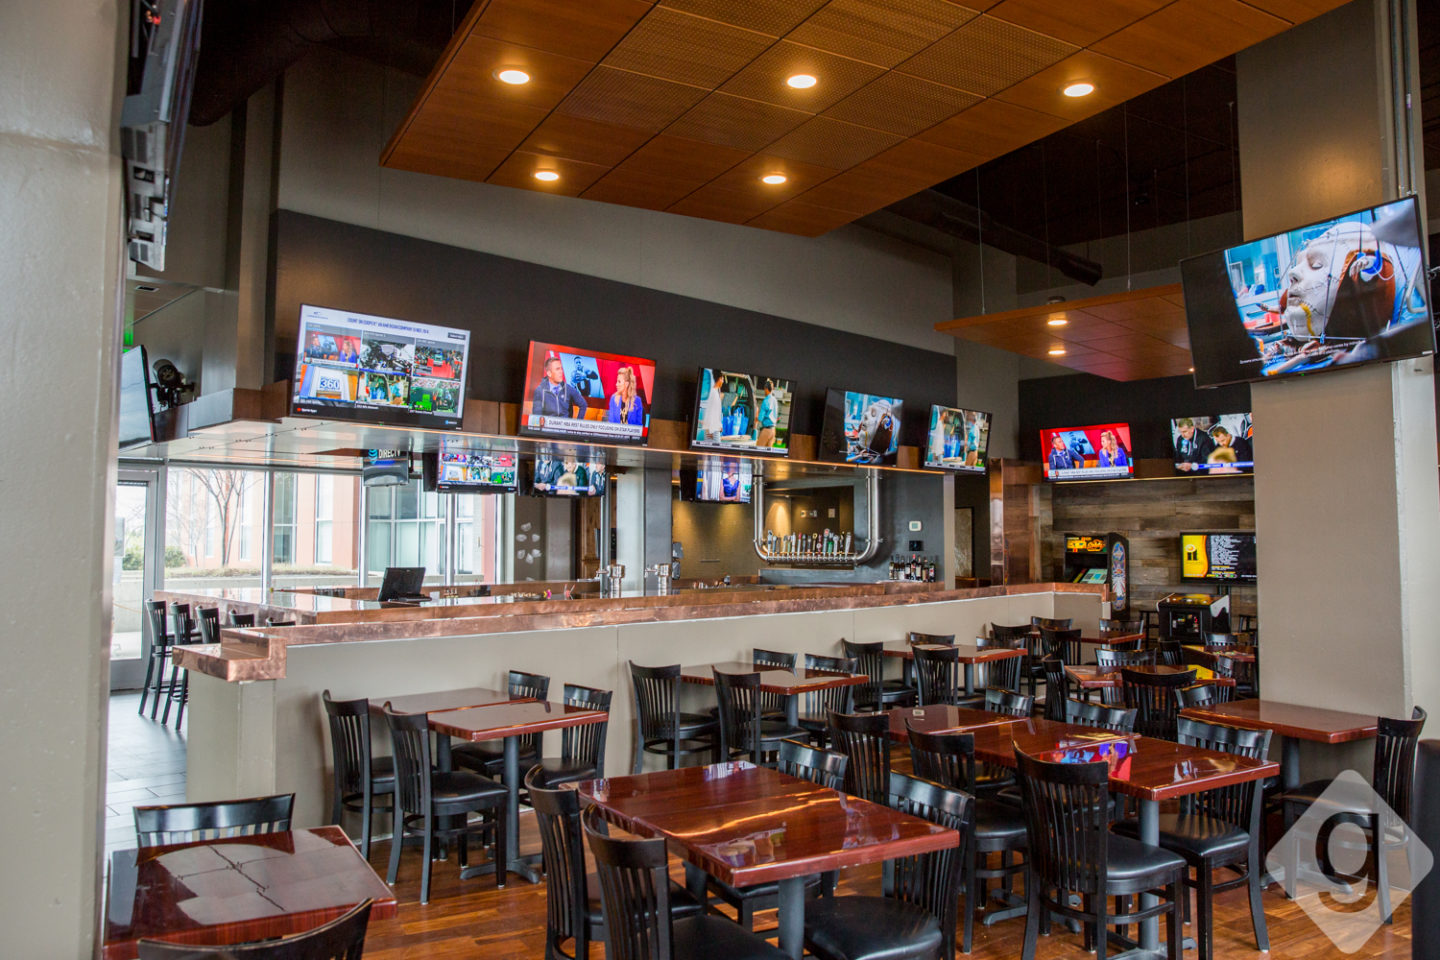 The Mainstay Is A Fresh Spot On East Side Located In 5th And Main Building They Have 23 Tvs Throughout Bar For Watching